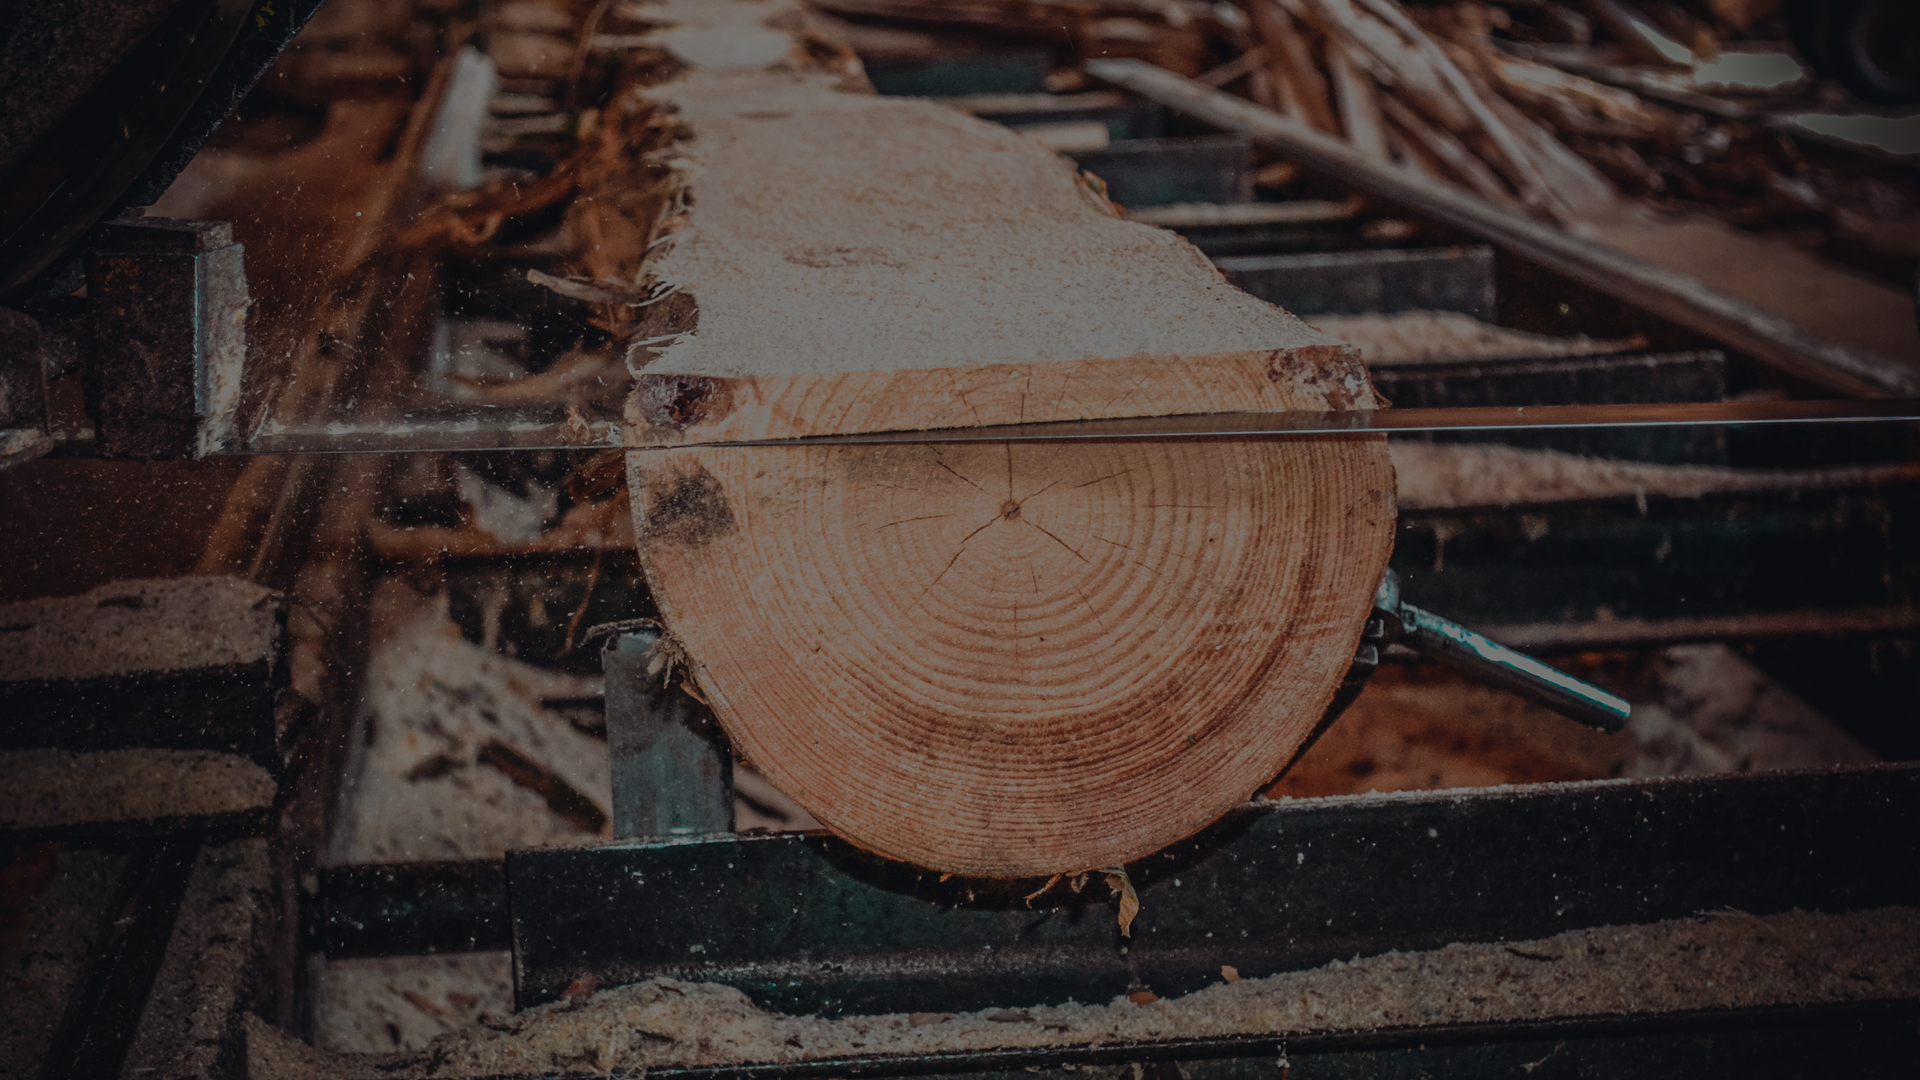 Wood Dust Exposure Prevention and Control In Sawmills